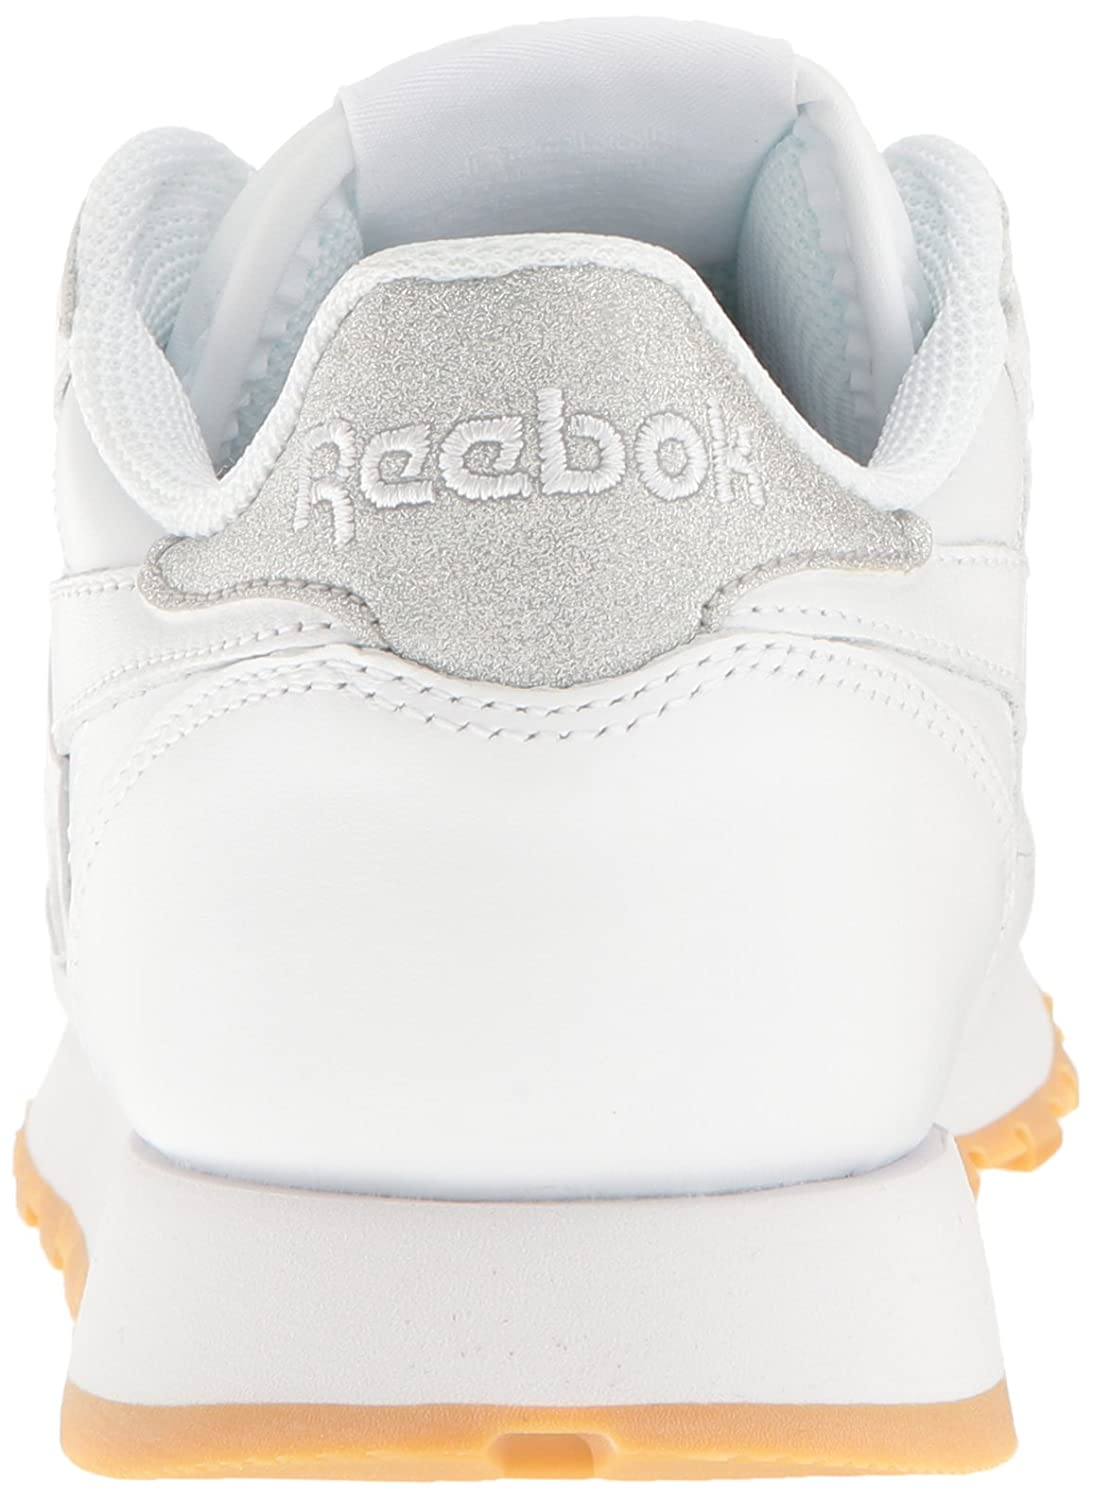 Reebok Women's Cl Lthr Met Diamond B(M) Fashion Sneaker B01GRWFT7I 7 B(M) Diamond US|White/Gum 370104